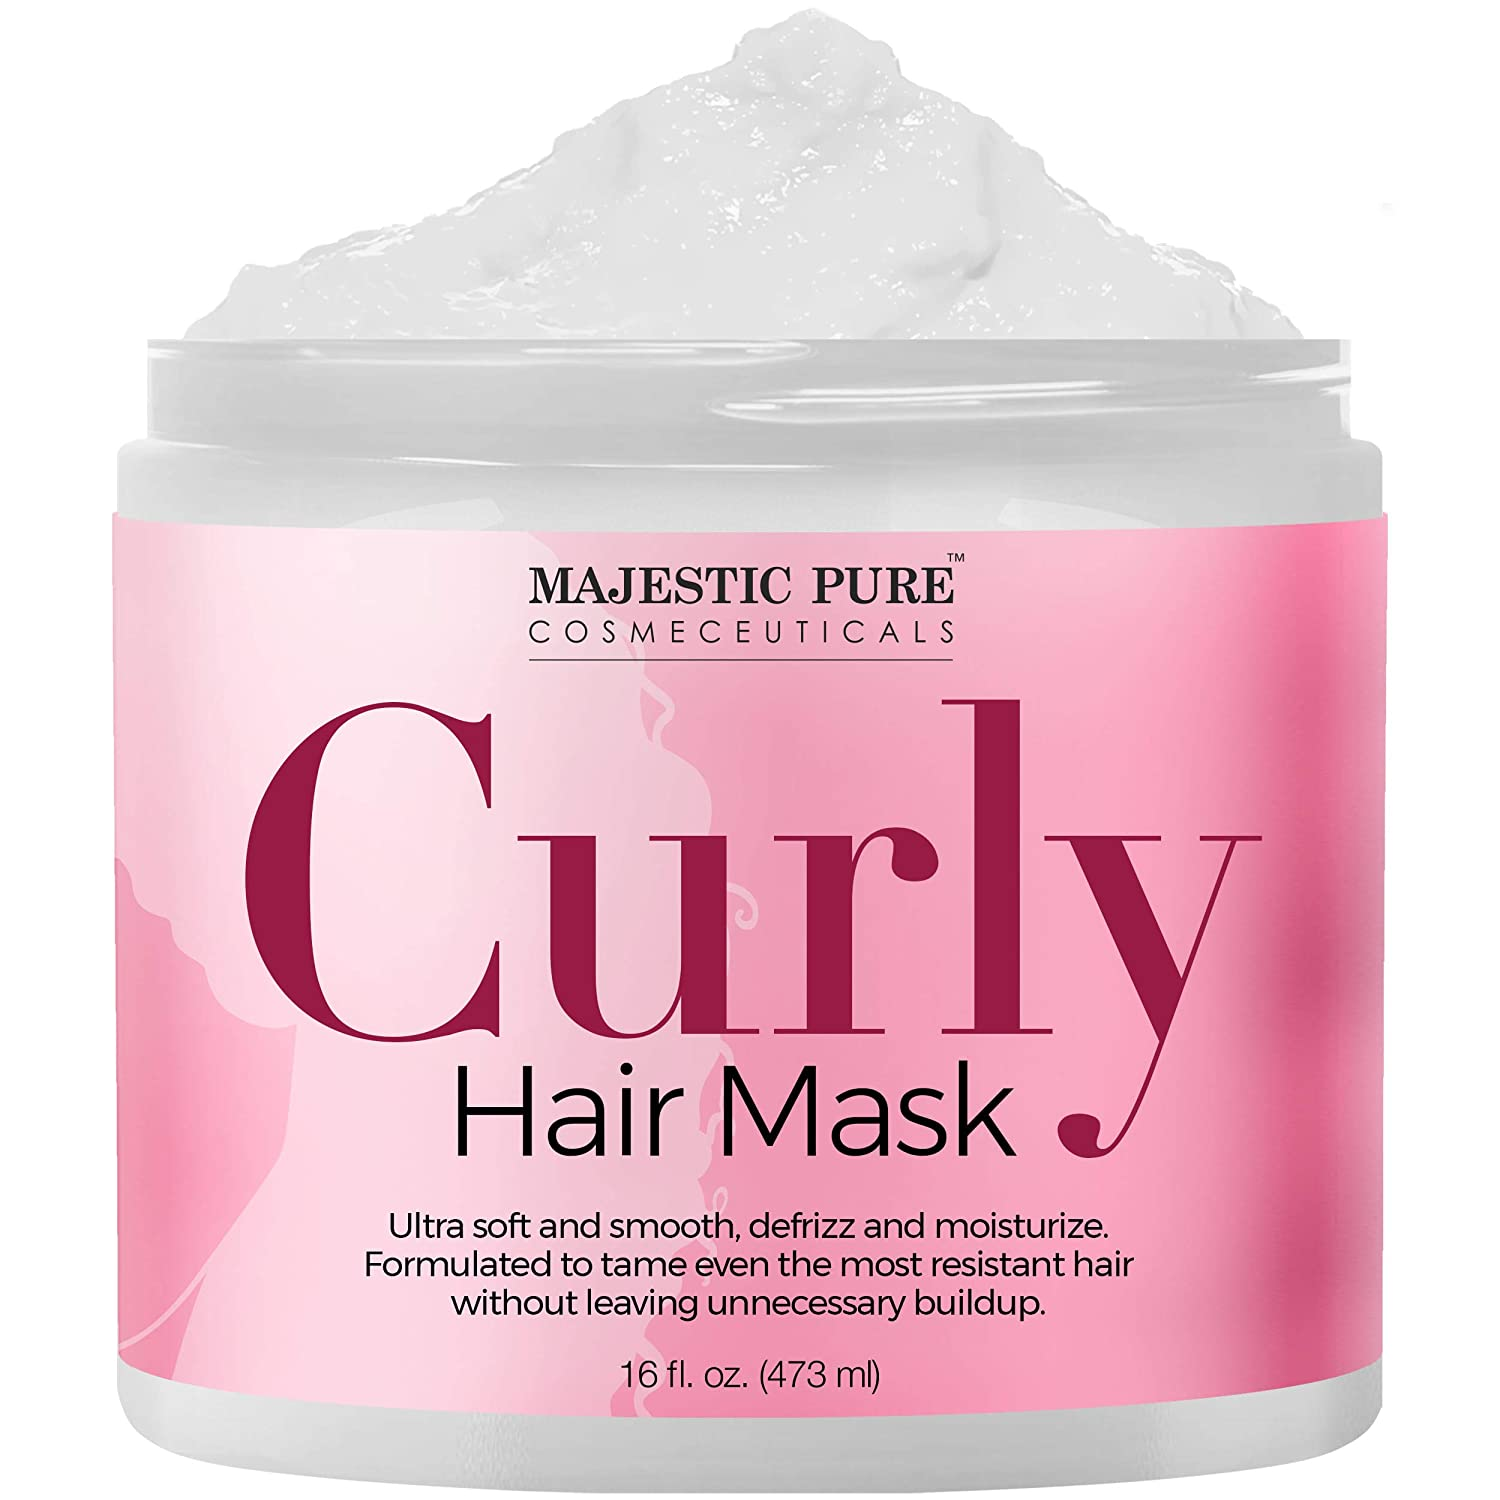 Majestic Pure Curly Hair Mask for Ultra Soft & Smooth Hair, Defrizz, Moisturize, Deep Conditioning Hair Treatment for Dry Damaged Hair and Chemically Processed Hair, 16 Fl. Oz.